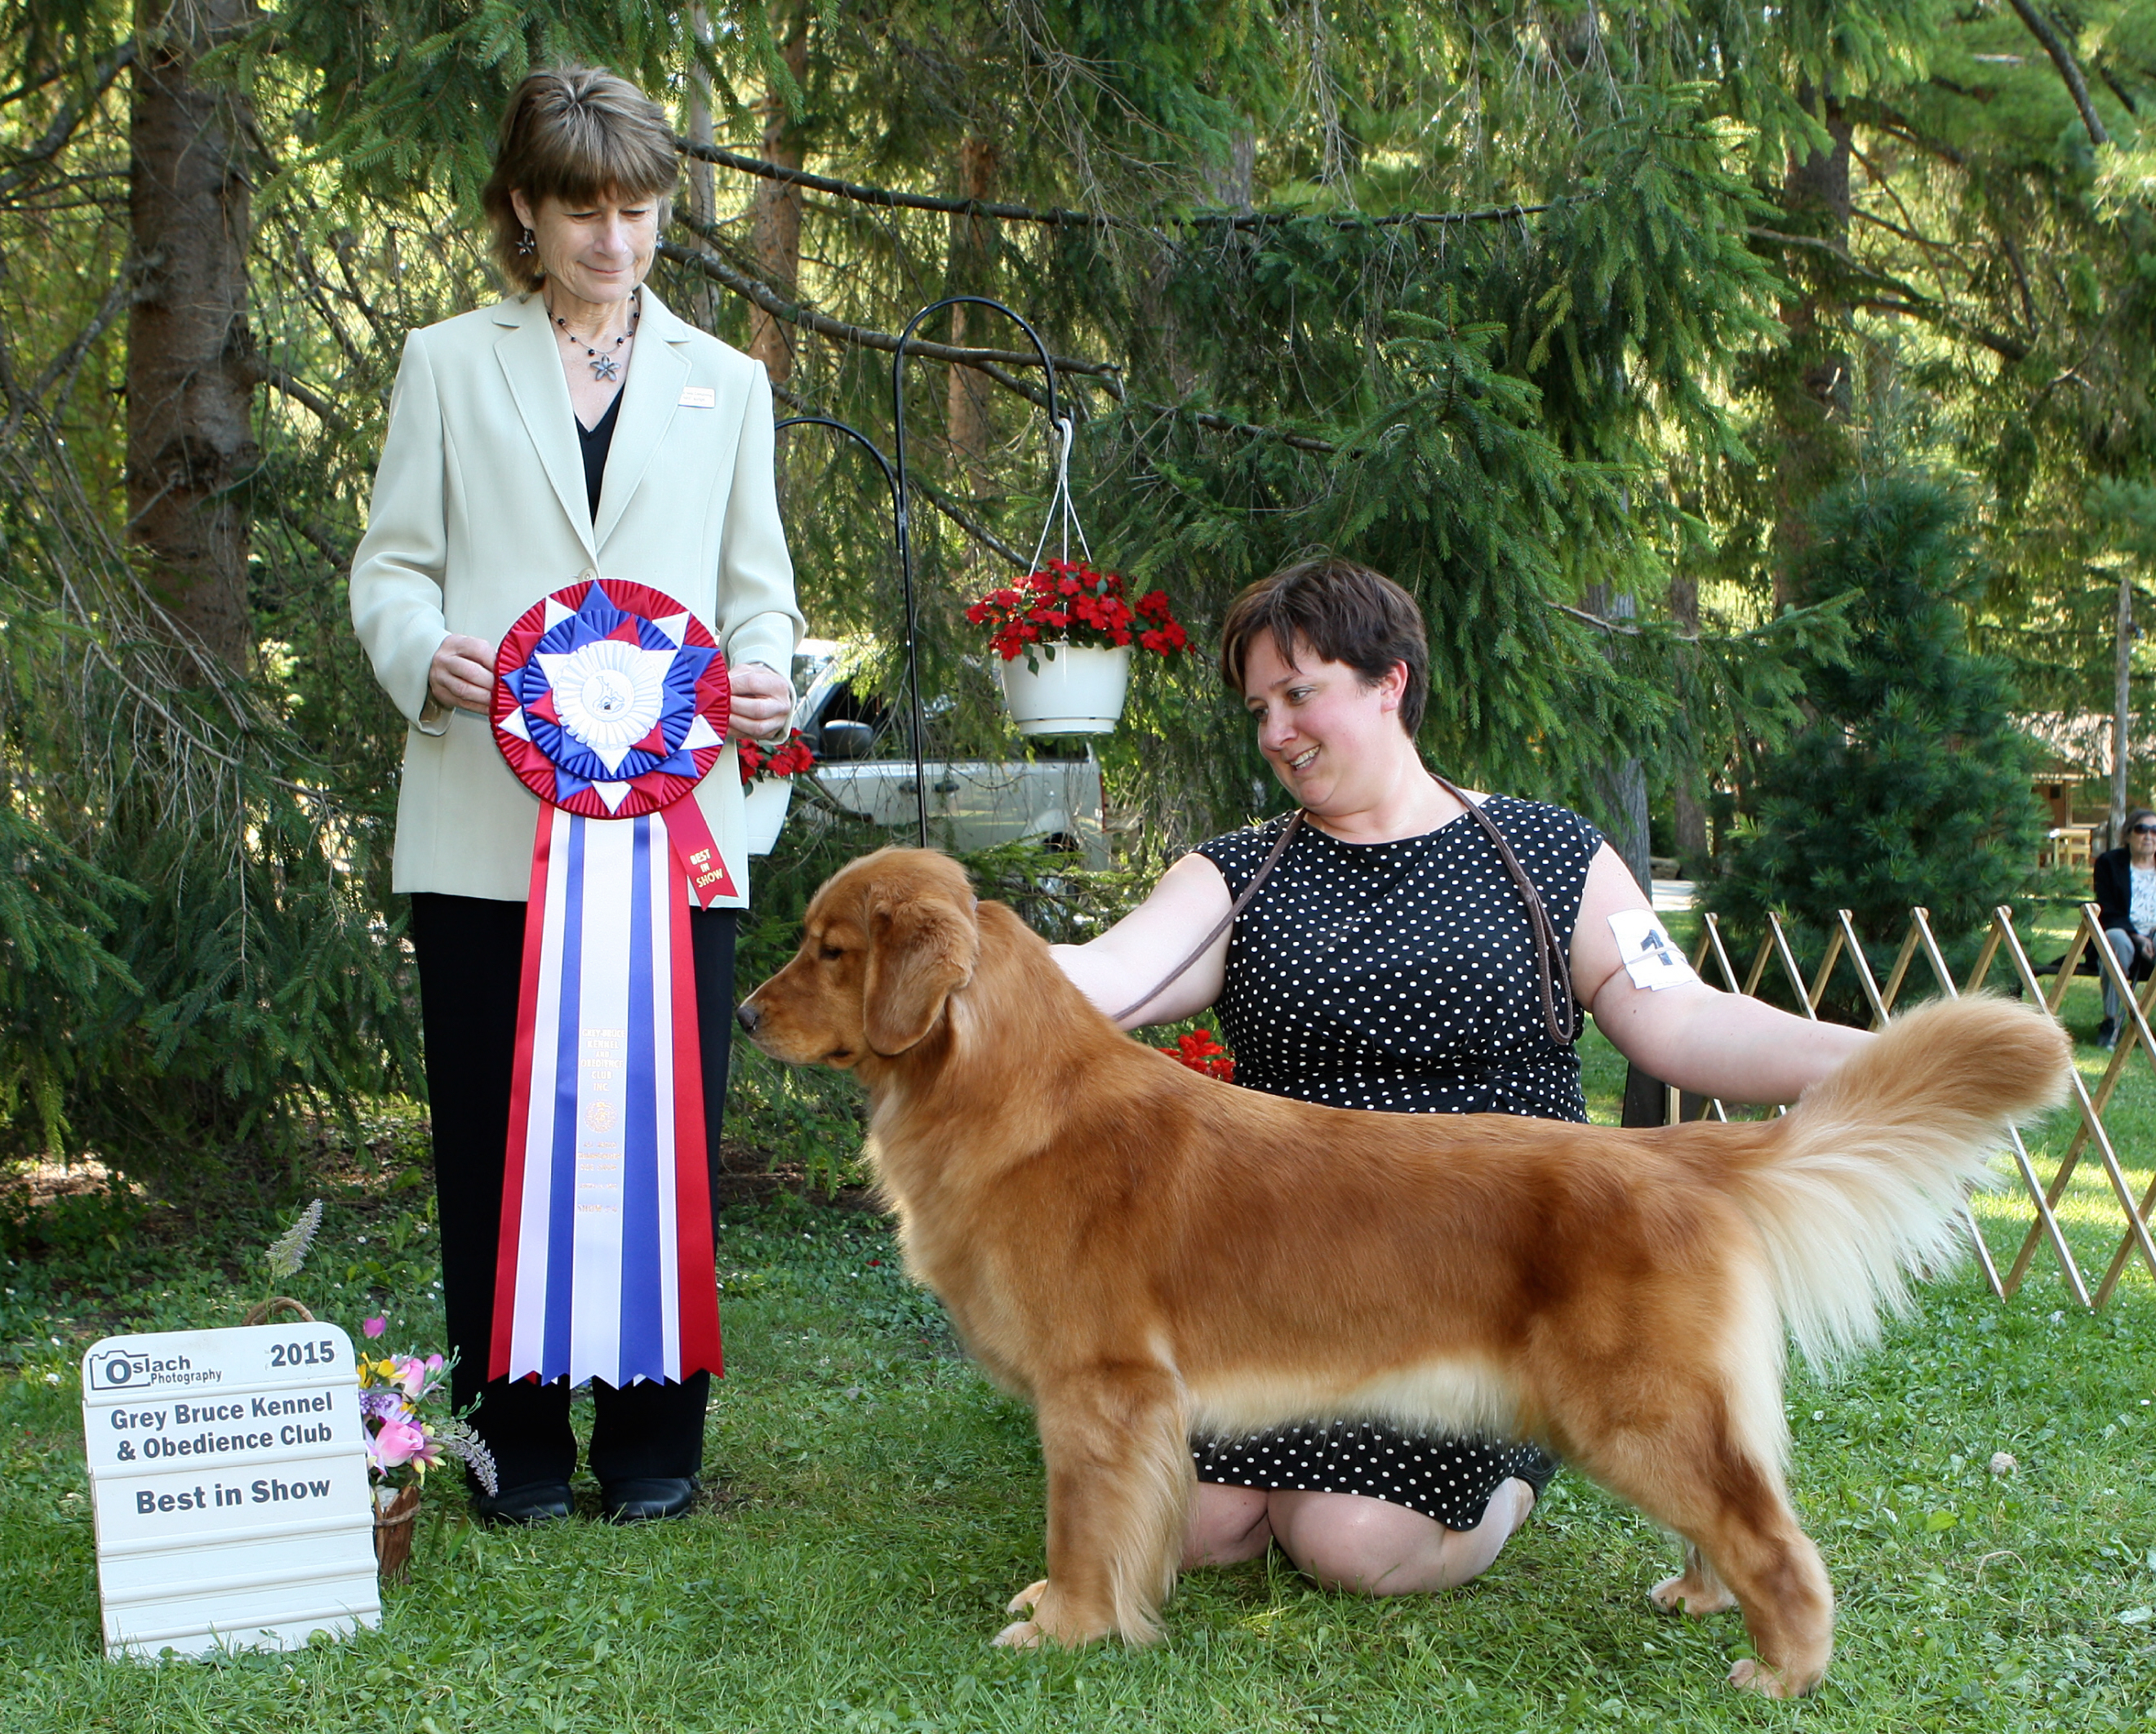 Best in Show at the Grey-Bruce Kennel and Obedience Club under esteemed Sporting Dog specialist Honey Glendinning (Canada)